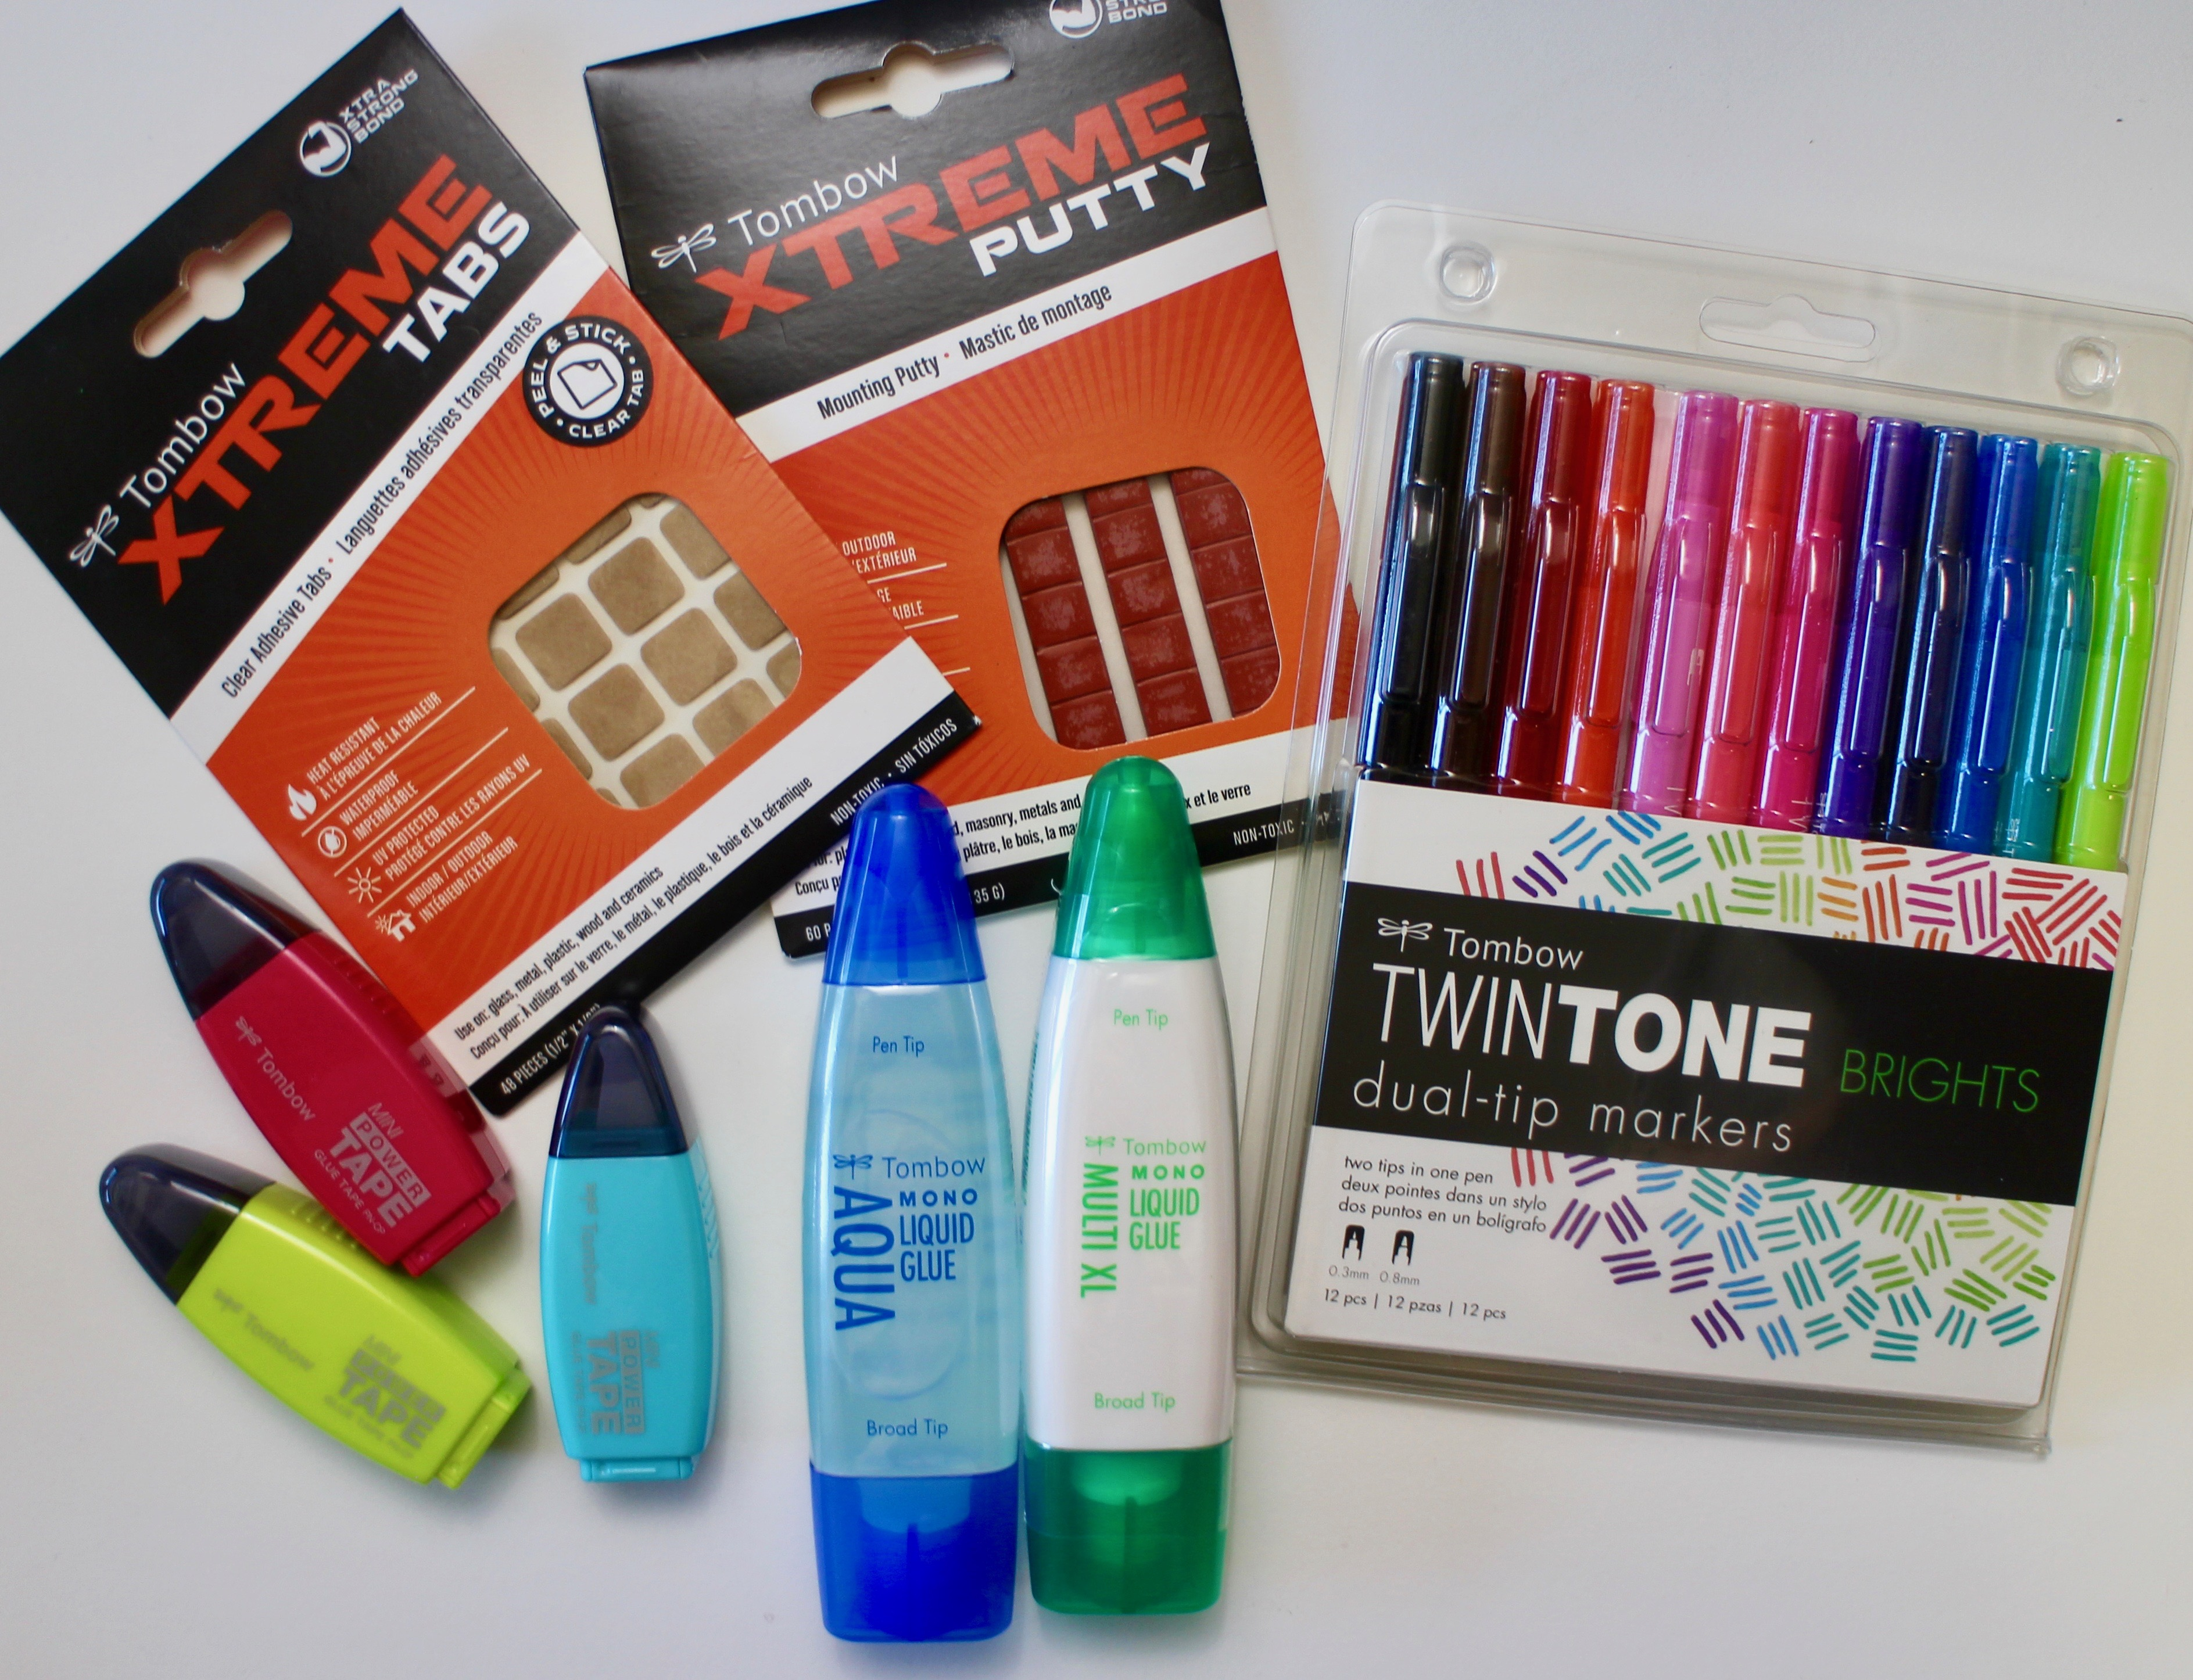 Tombow products for teachers